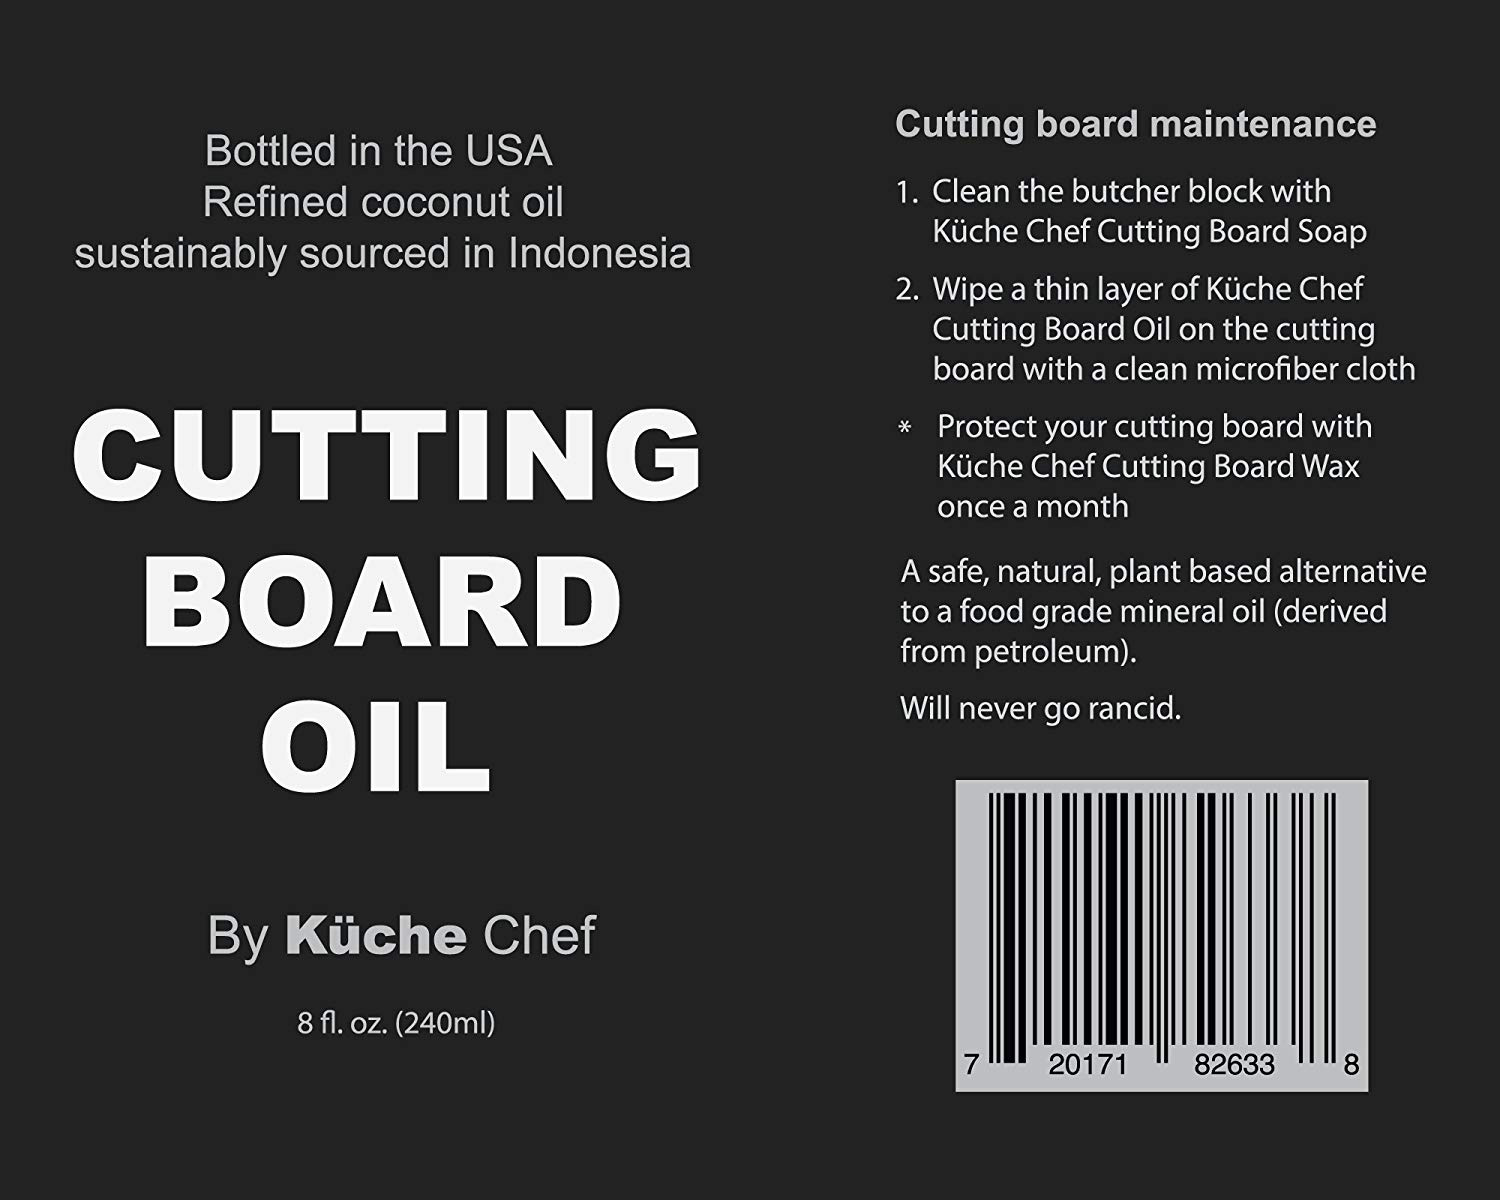 Kuche Chef Natural Cutting Board Oil For Daily Use Bottled In The Usa From Sustainably Sourced Non Gmo Refined Coconut Oil Protect Wooden Cutting Board Does